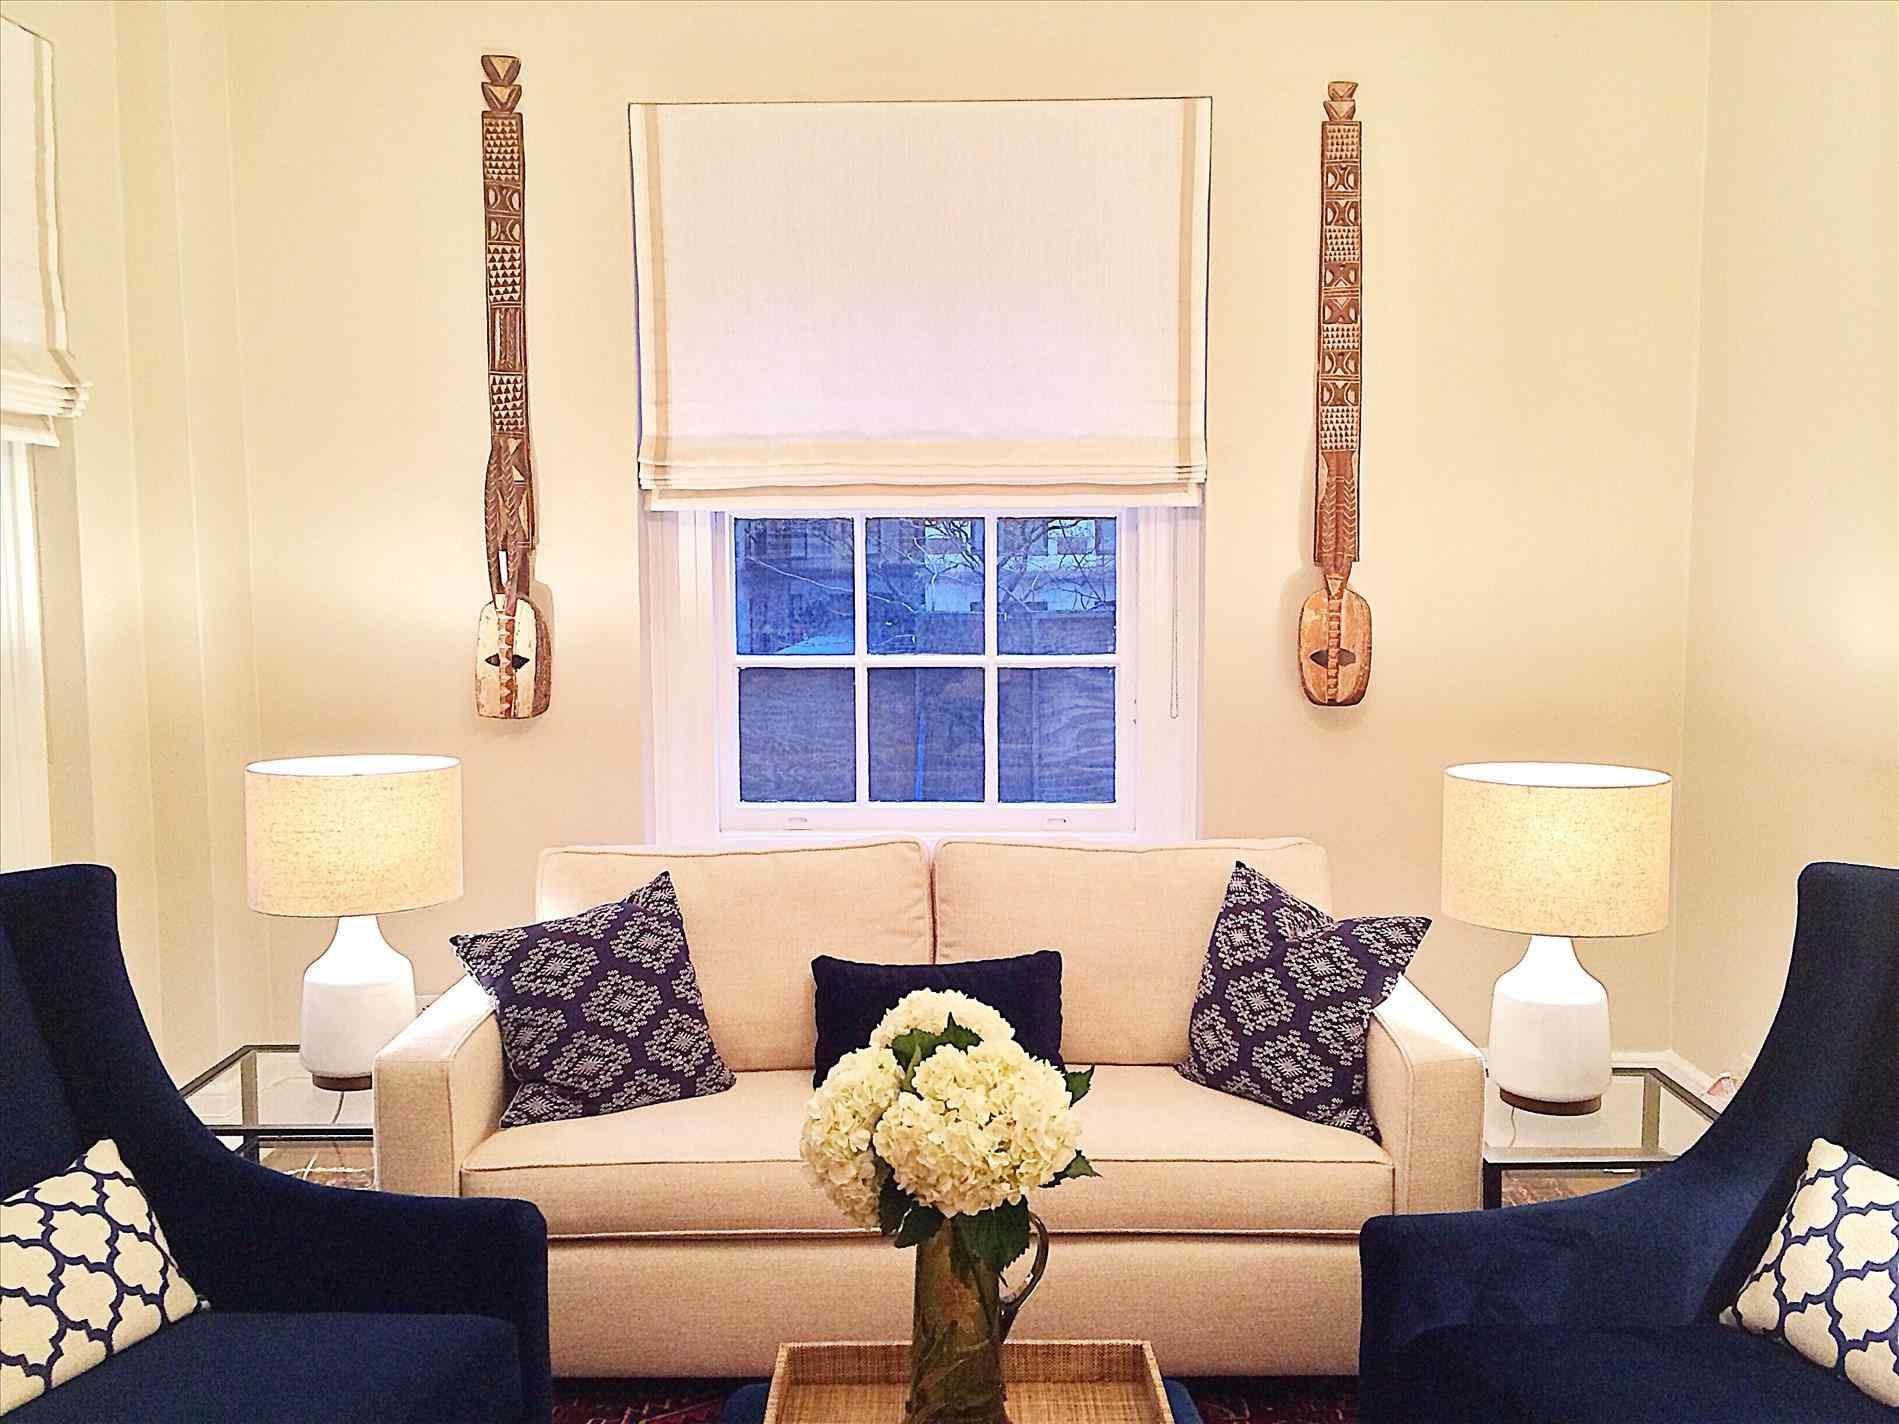 14 Incredible Navy Blue And Cream Living Room Ideas Breakpr Blue And Cream Living Room Cream Living Rooms Cream Living Room Decor